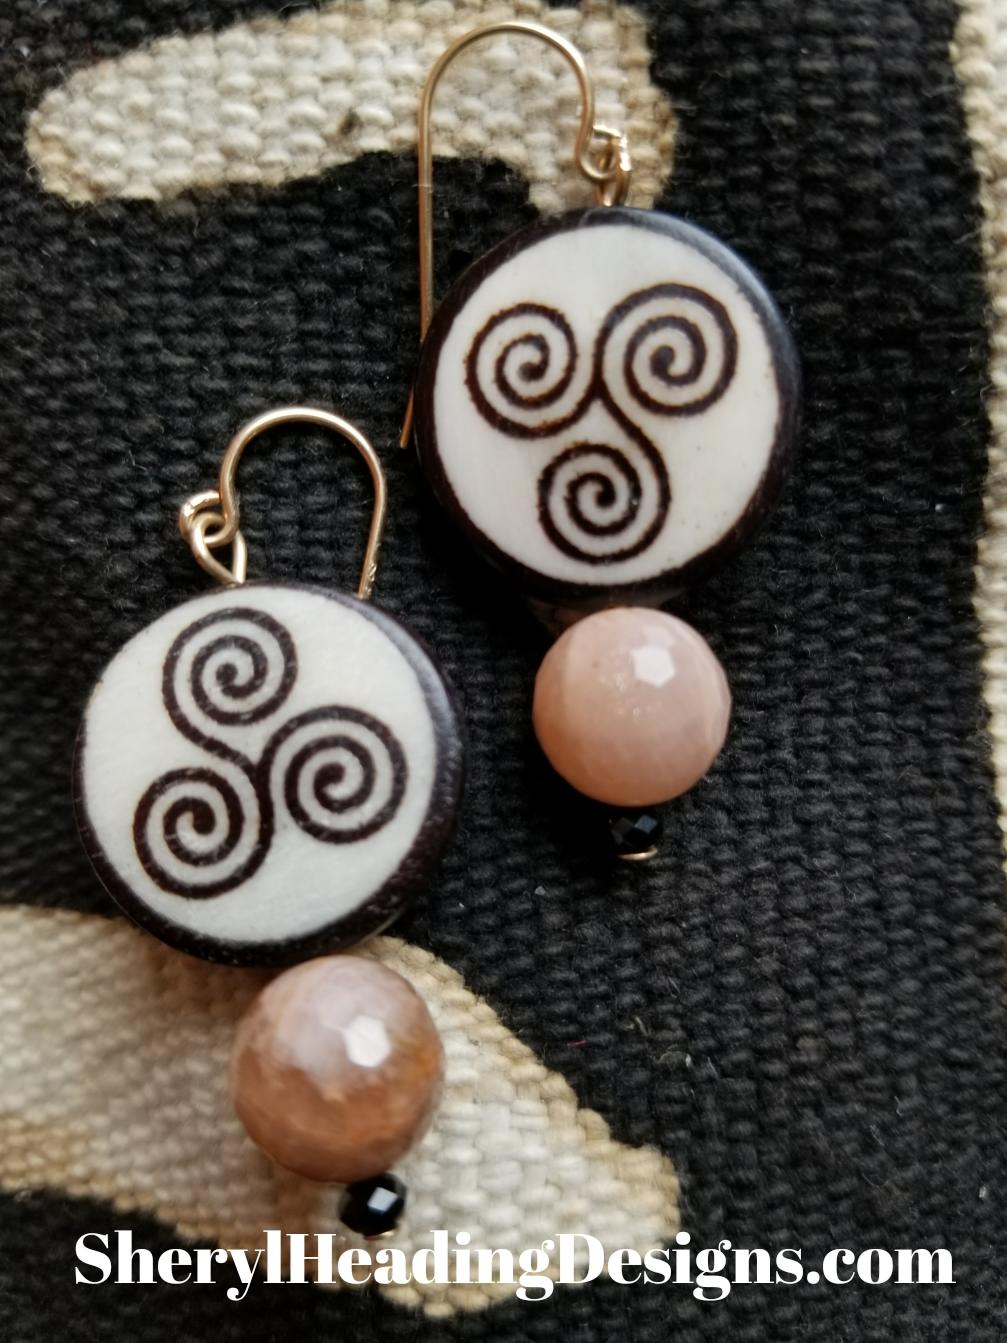 African Swirls Dangle Pierced Earrings With Faceted Semi Precious Stones. - Sheryl Heading Designs